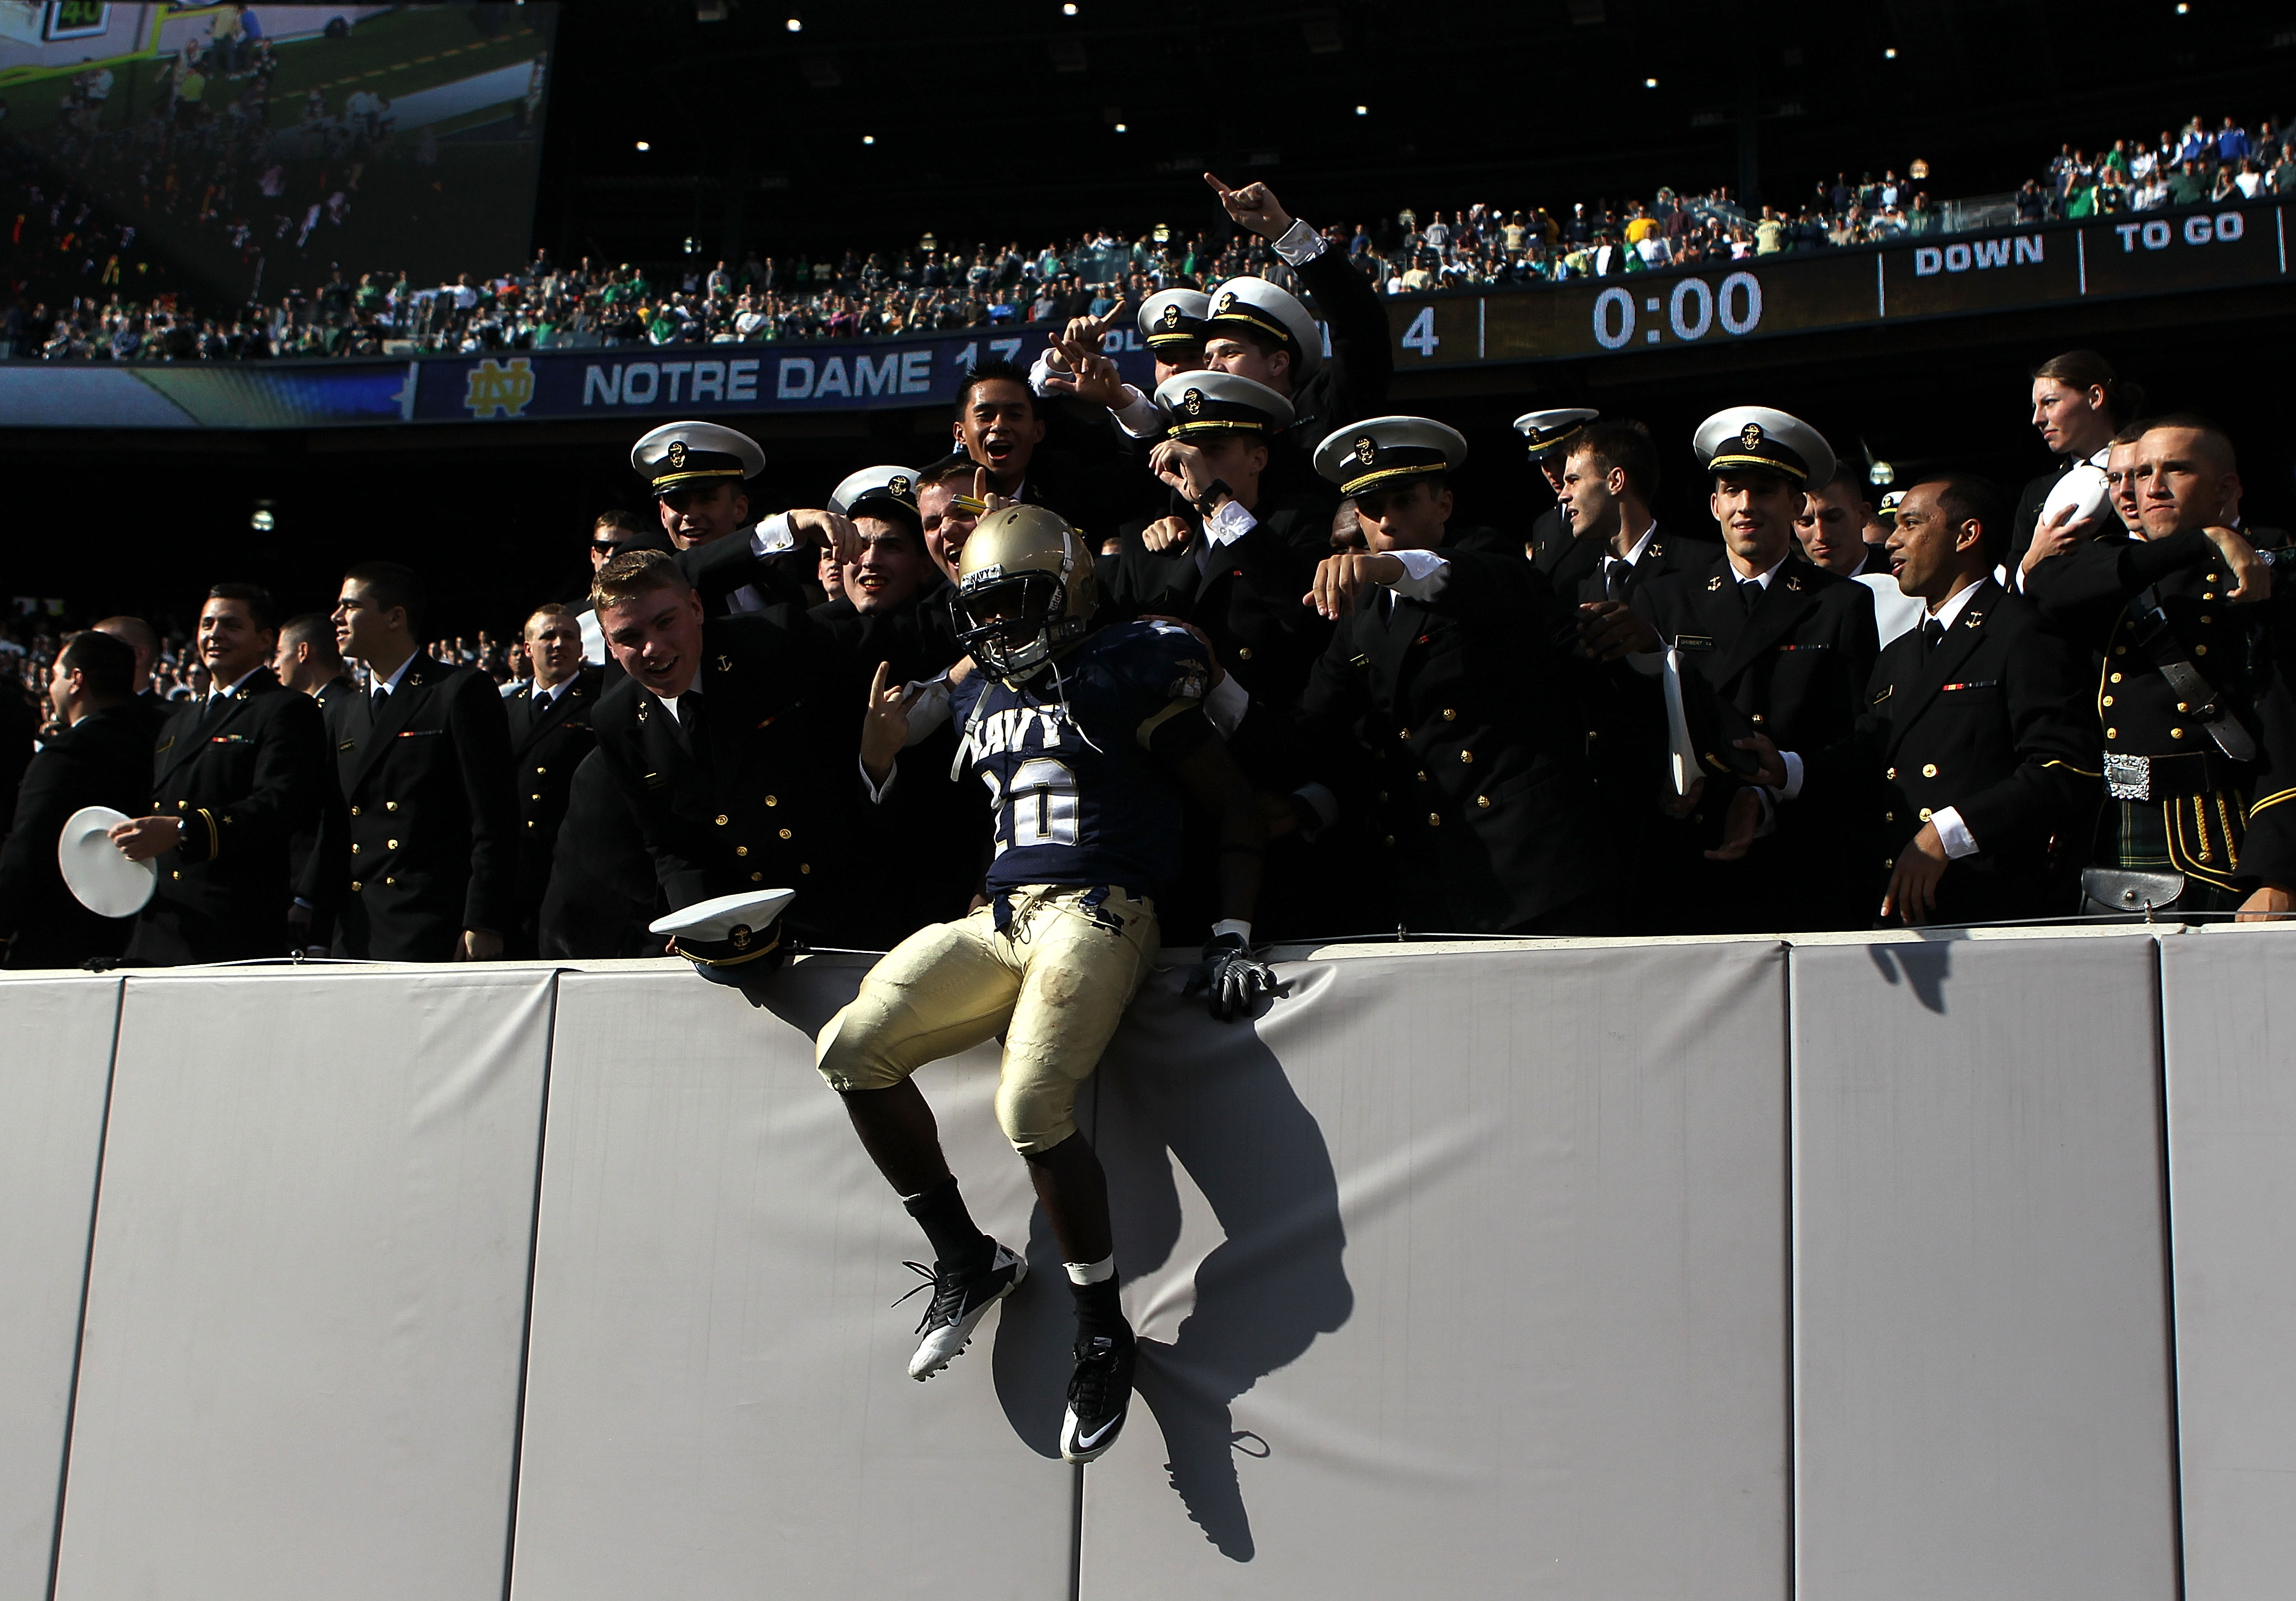 EAST RUTHERFORD, NJ - OCTOBER 23: Andre Byrd #20 of the Navy Midshipmen celebrates the win against the Notre Dame Fighting Irish at New Meadowlands Stadium on October 23, 2010 in East Rutherford, New Jersey.  (Photo by Nick Laham/Getty Images)